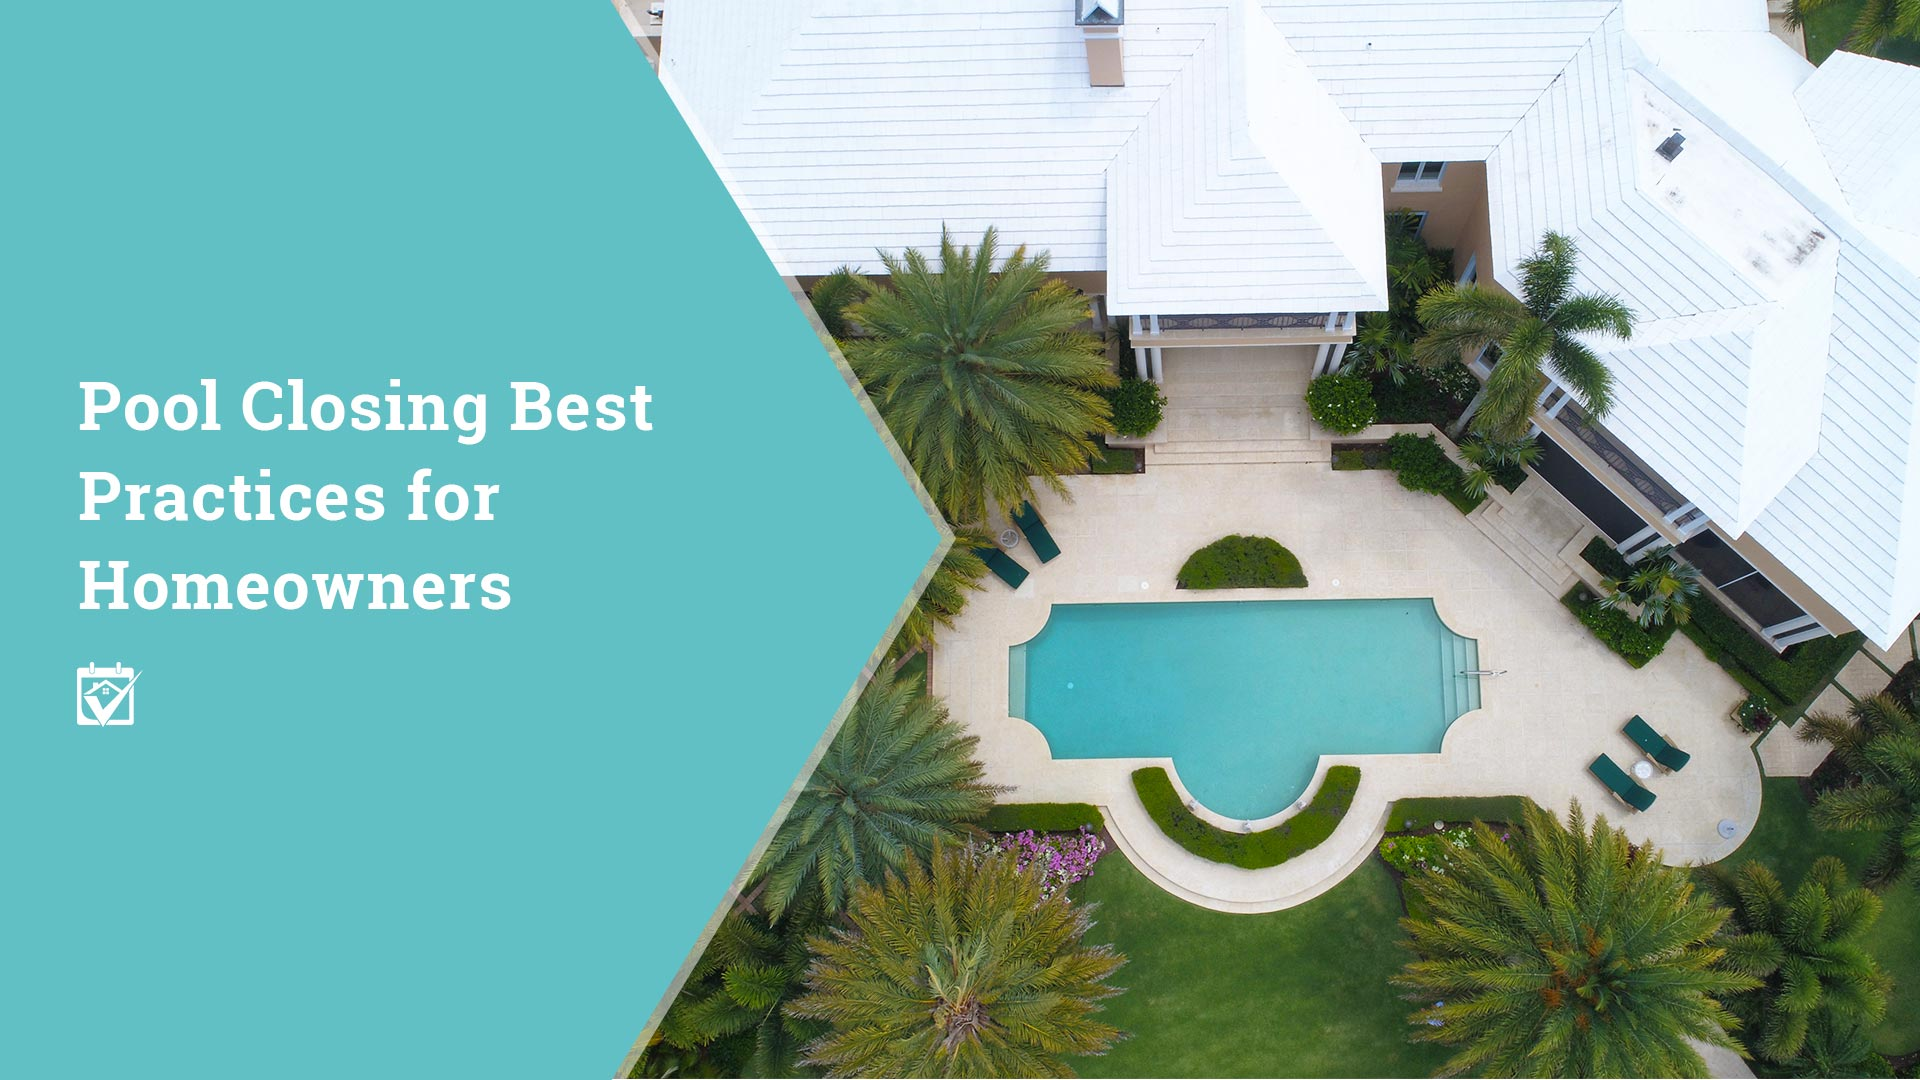 Pool Closing Best Practices for Homeowners